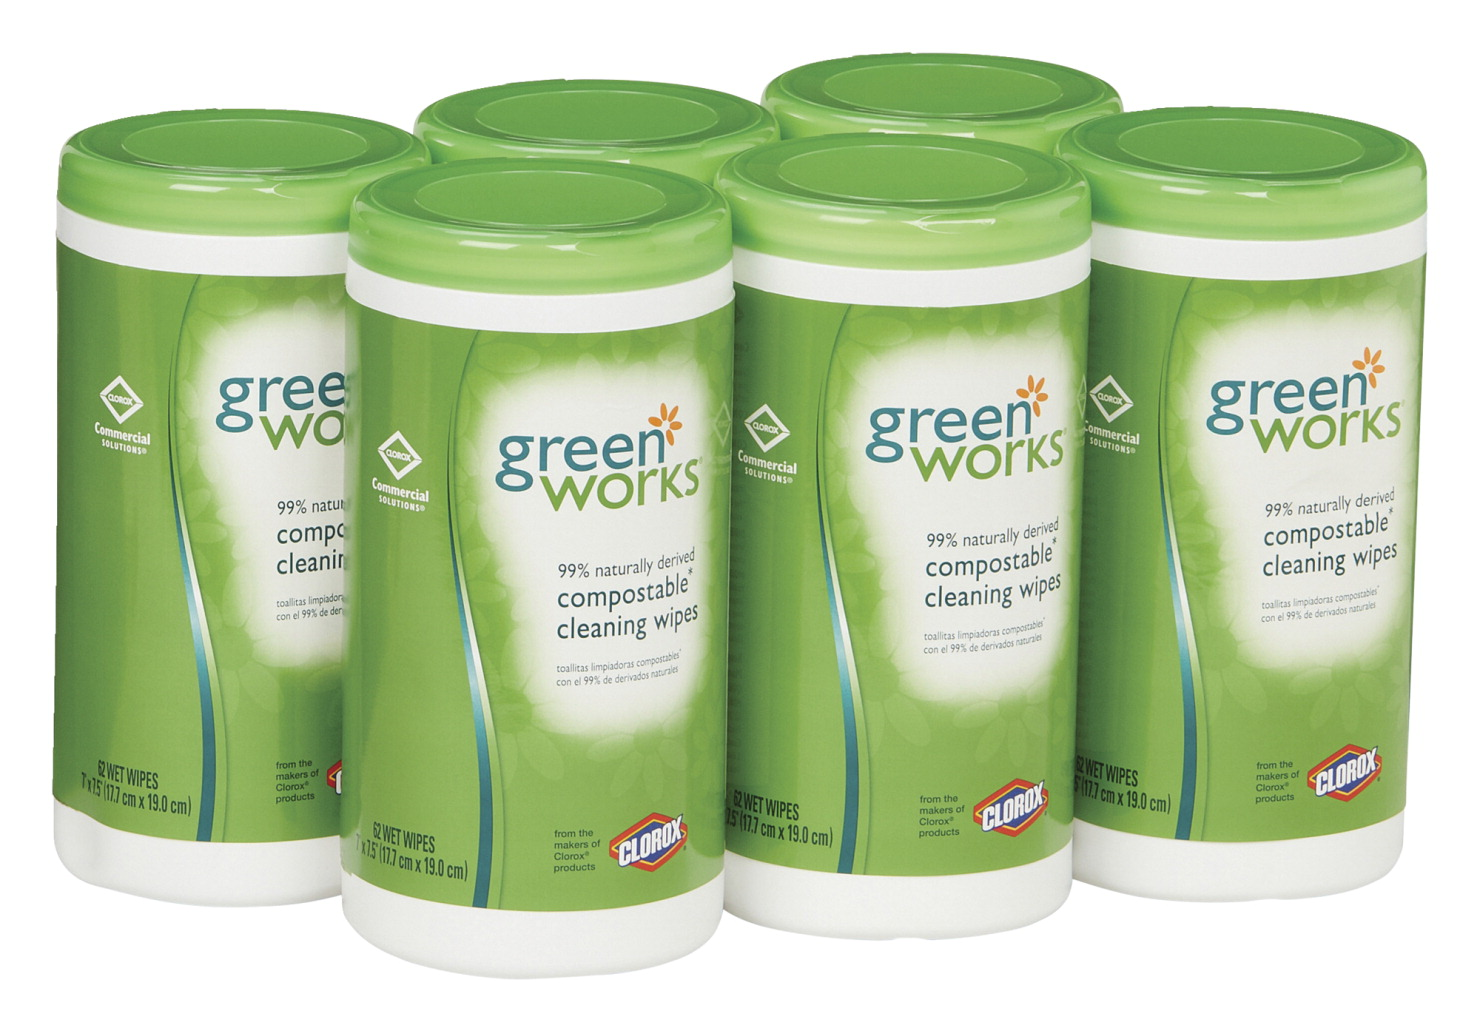 Clorox Green Works Compostable Cleaning Wipes, Pack of 6